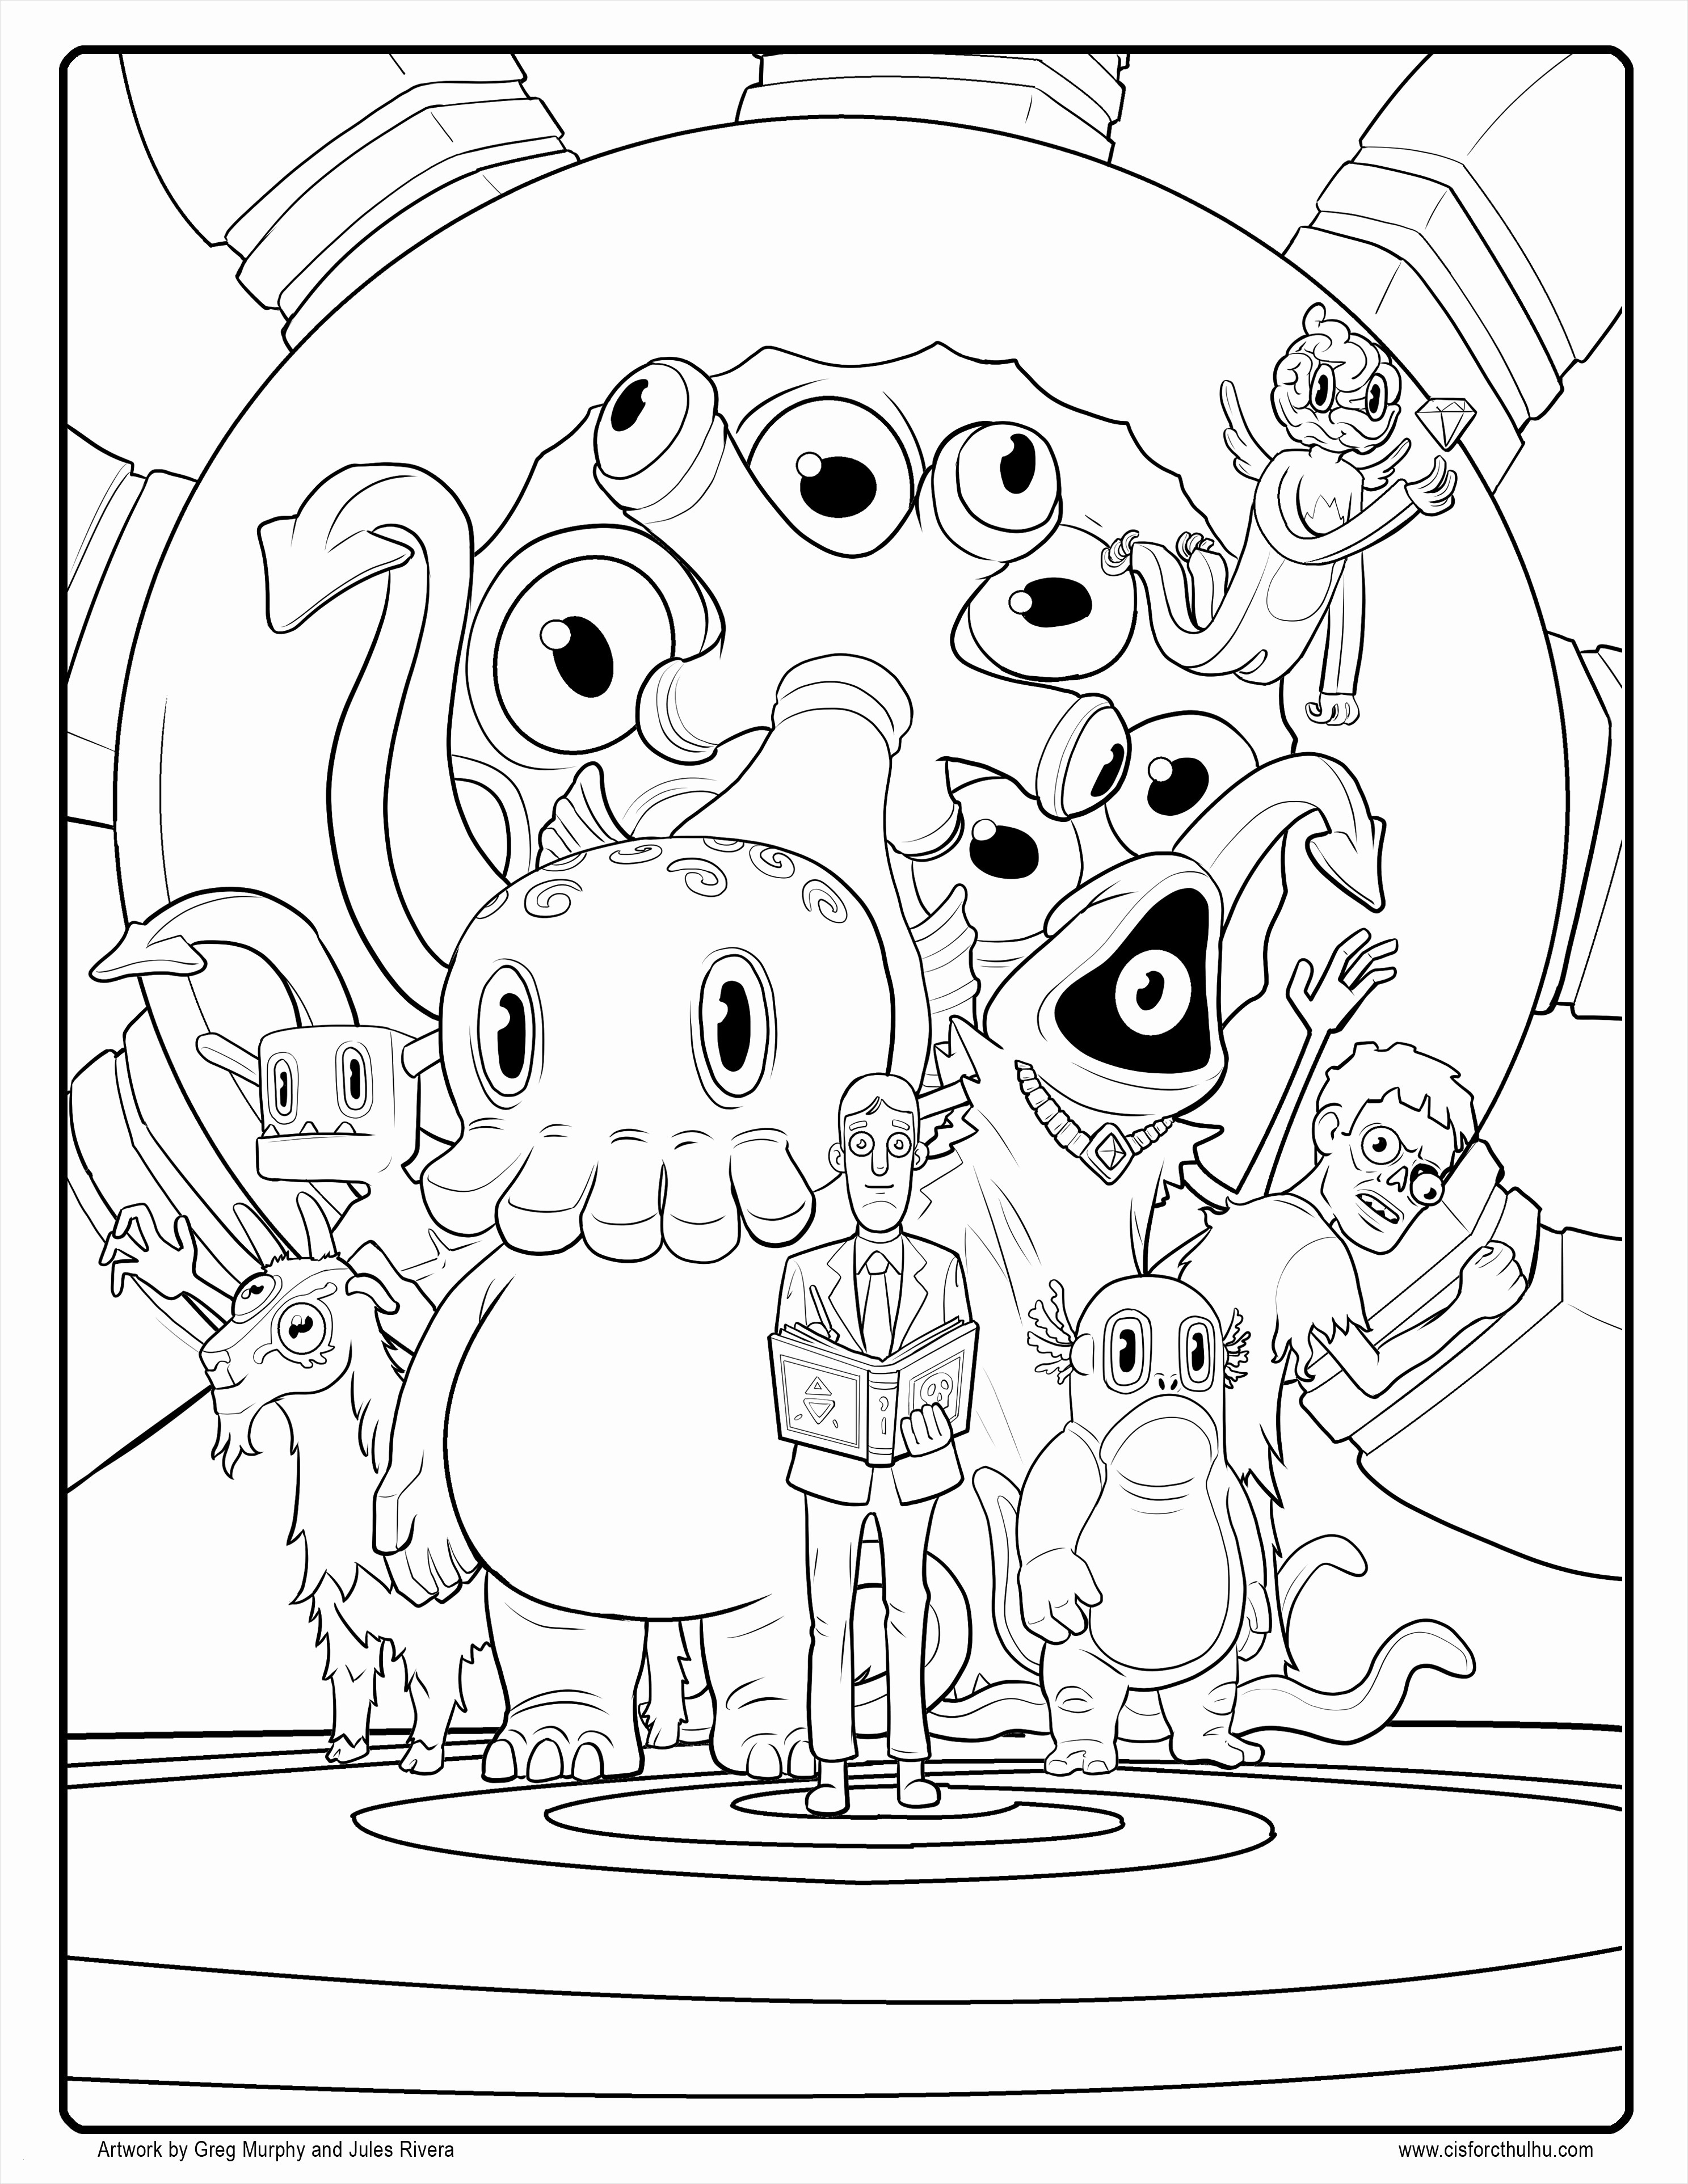 Webkinz Coloring Pages  Collection 2r - Free For kids